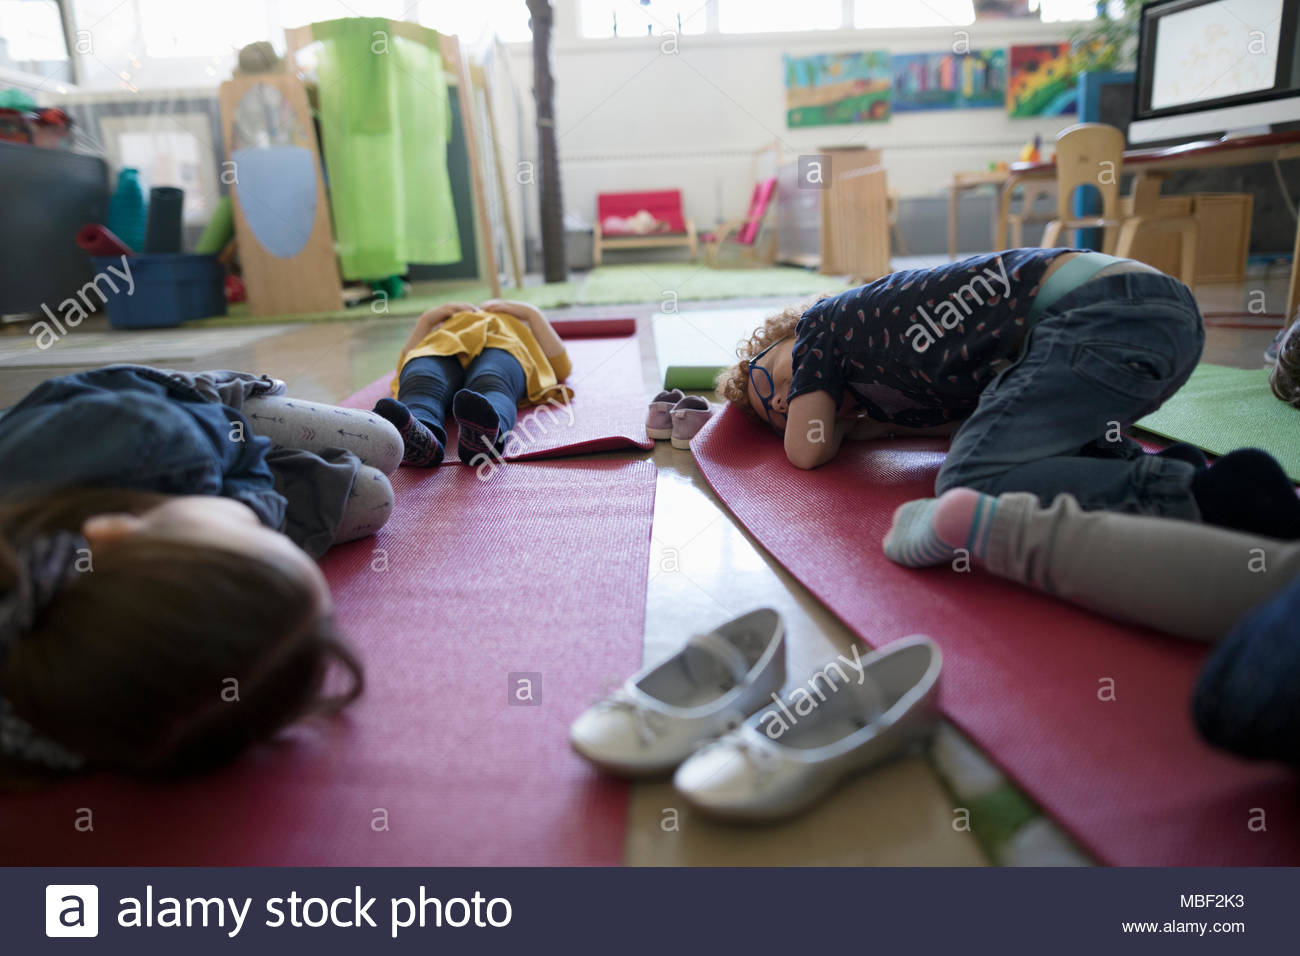 Tired preschool students sleeping on yoga mats during nap time - Stock Image